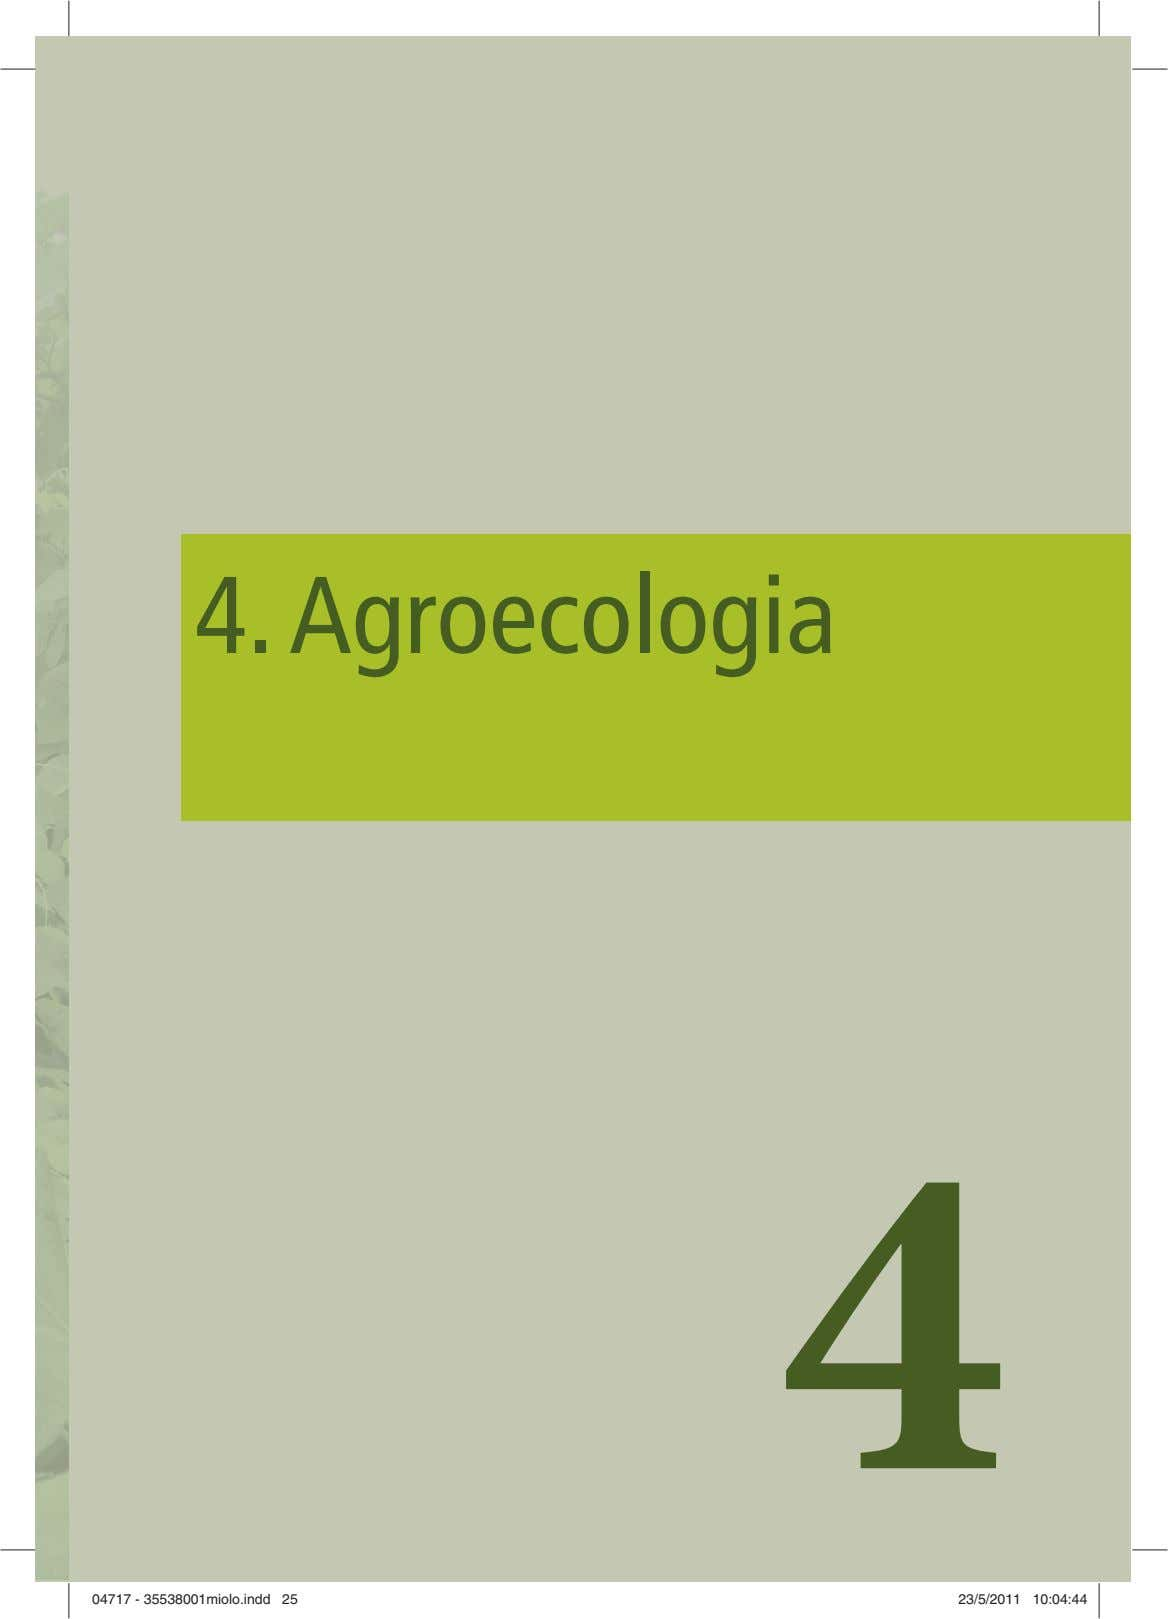 4. Agroecologia 4 0047174717 -- 335538001miolo.indd5538001miolo.indd 2255 223/5/20113/5/2011 110:04:440:04:44